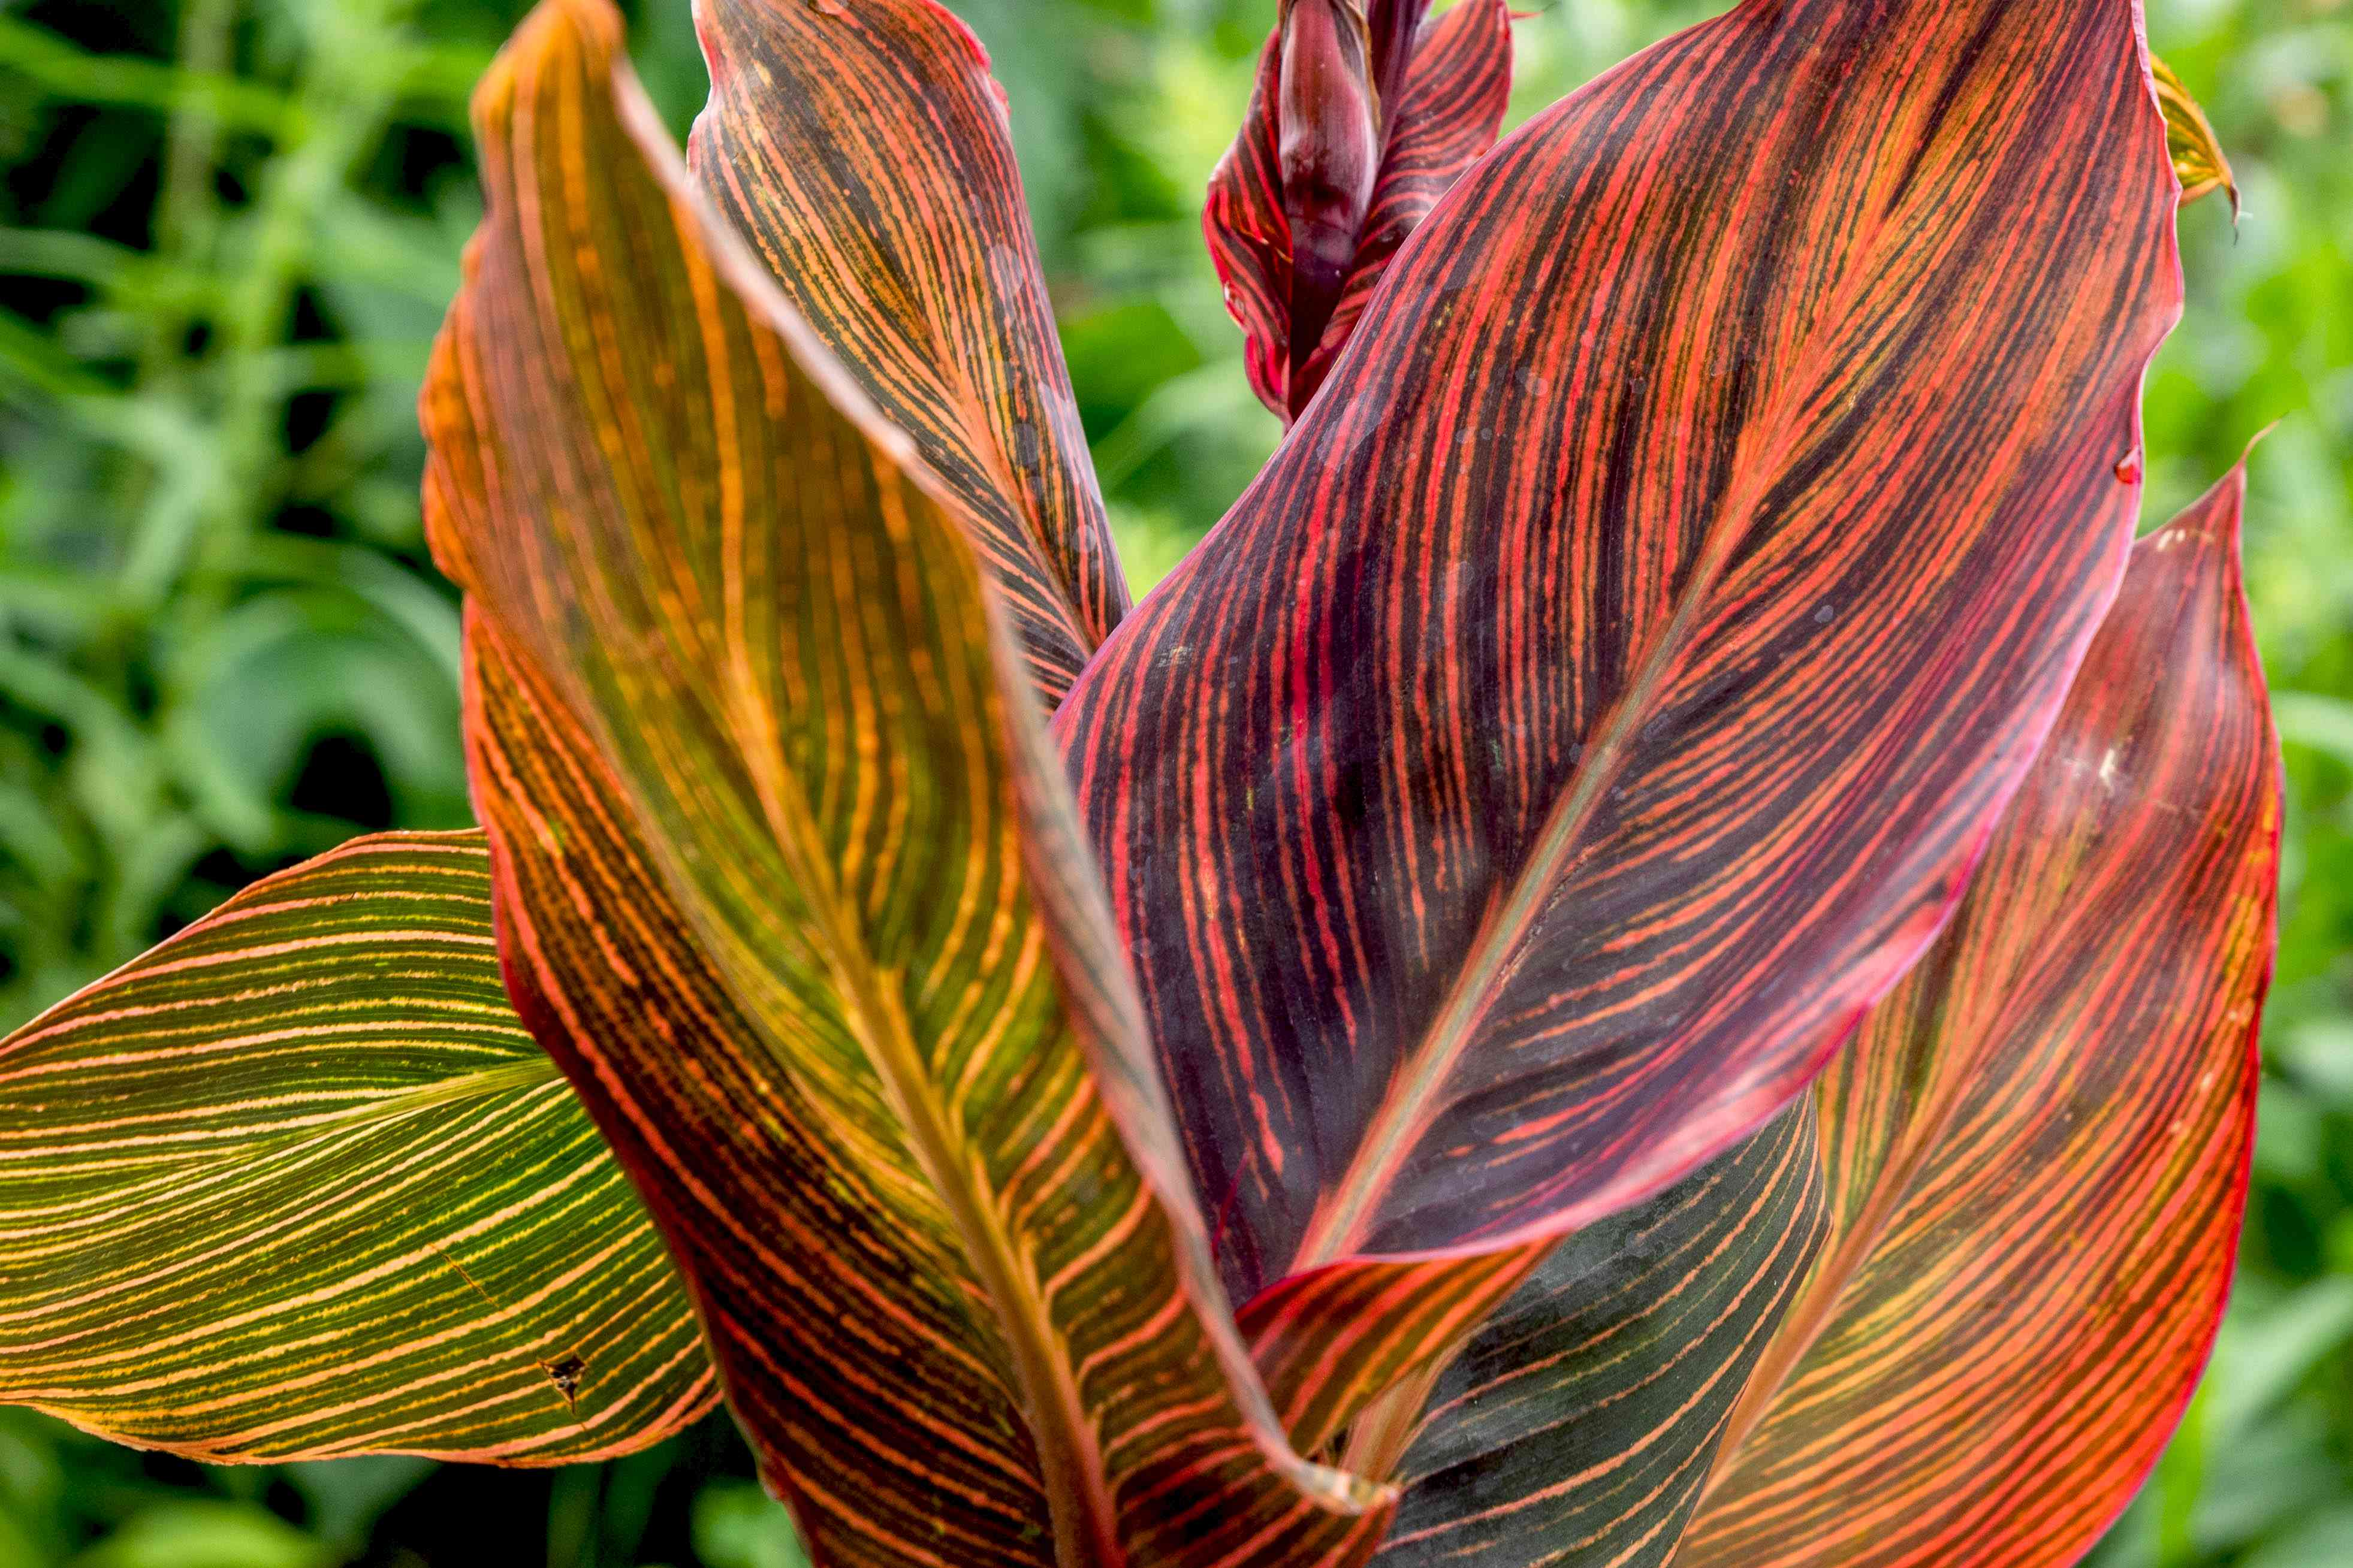 Tropicanna canna plant with red, yellow, orange and green variegated leaves closeup